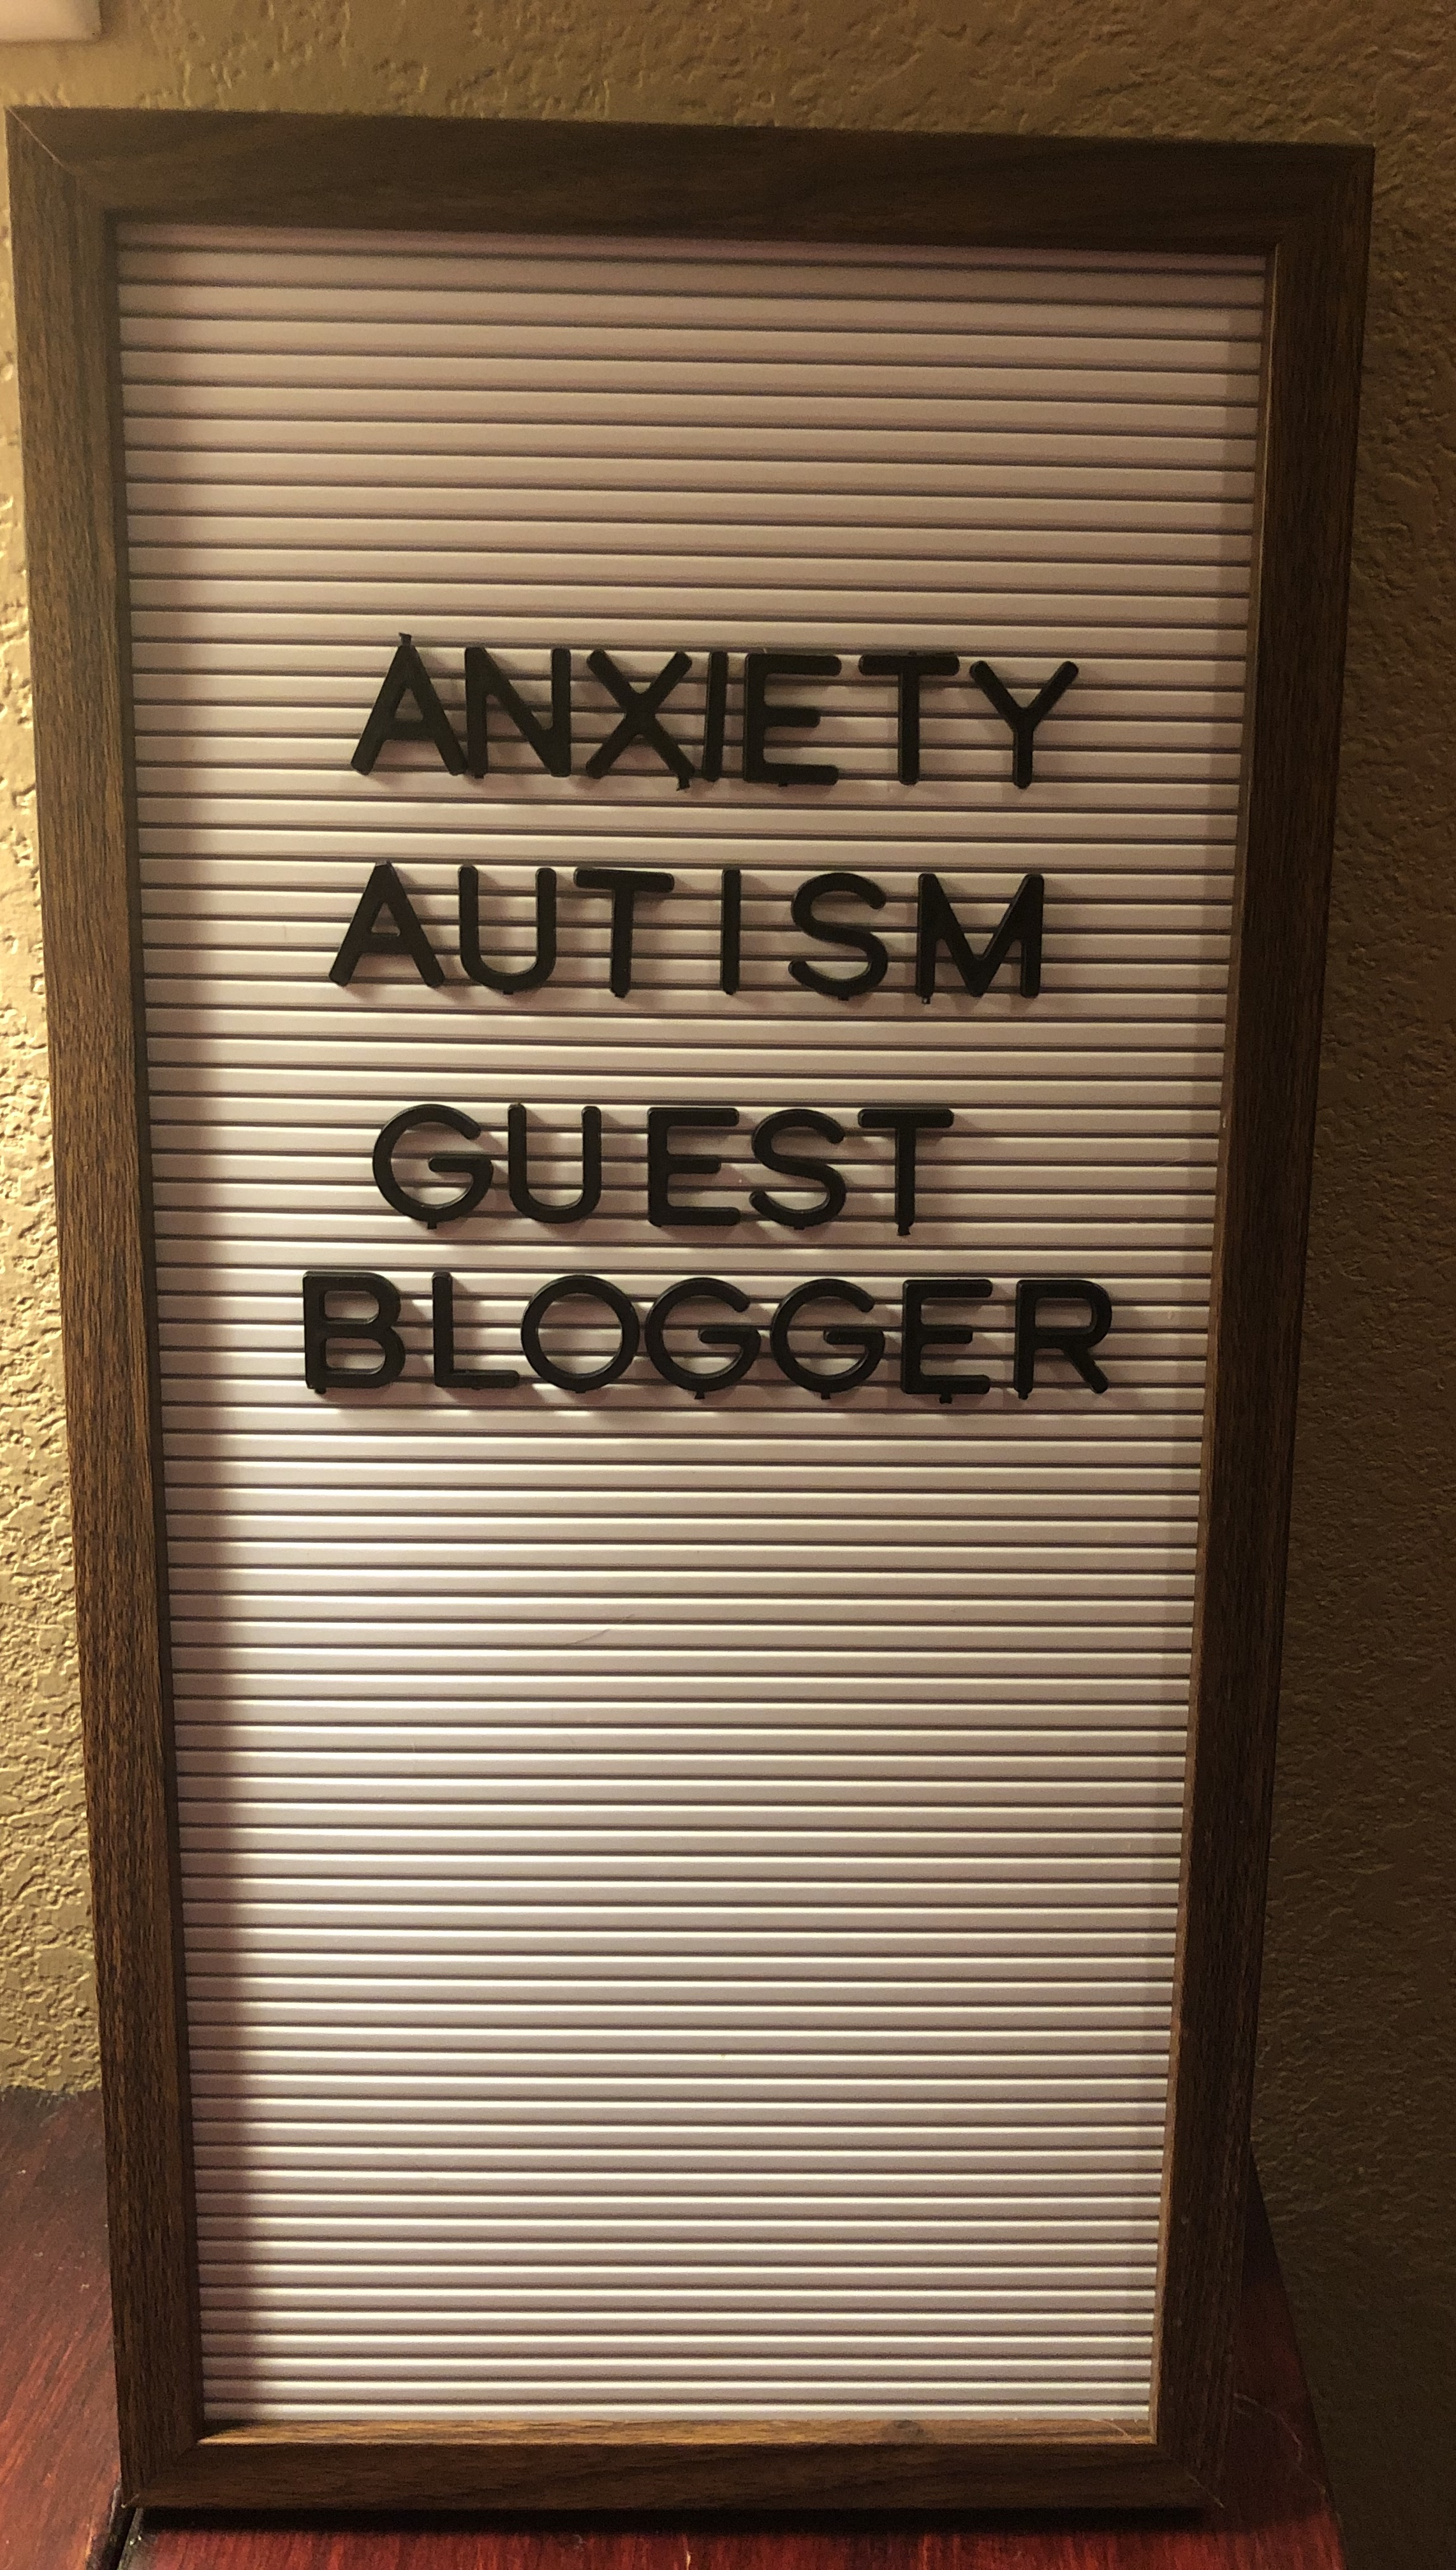 Anxiety in autism spectrum disorder